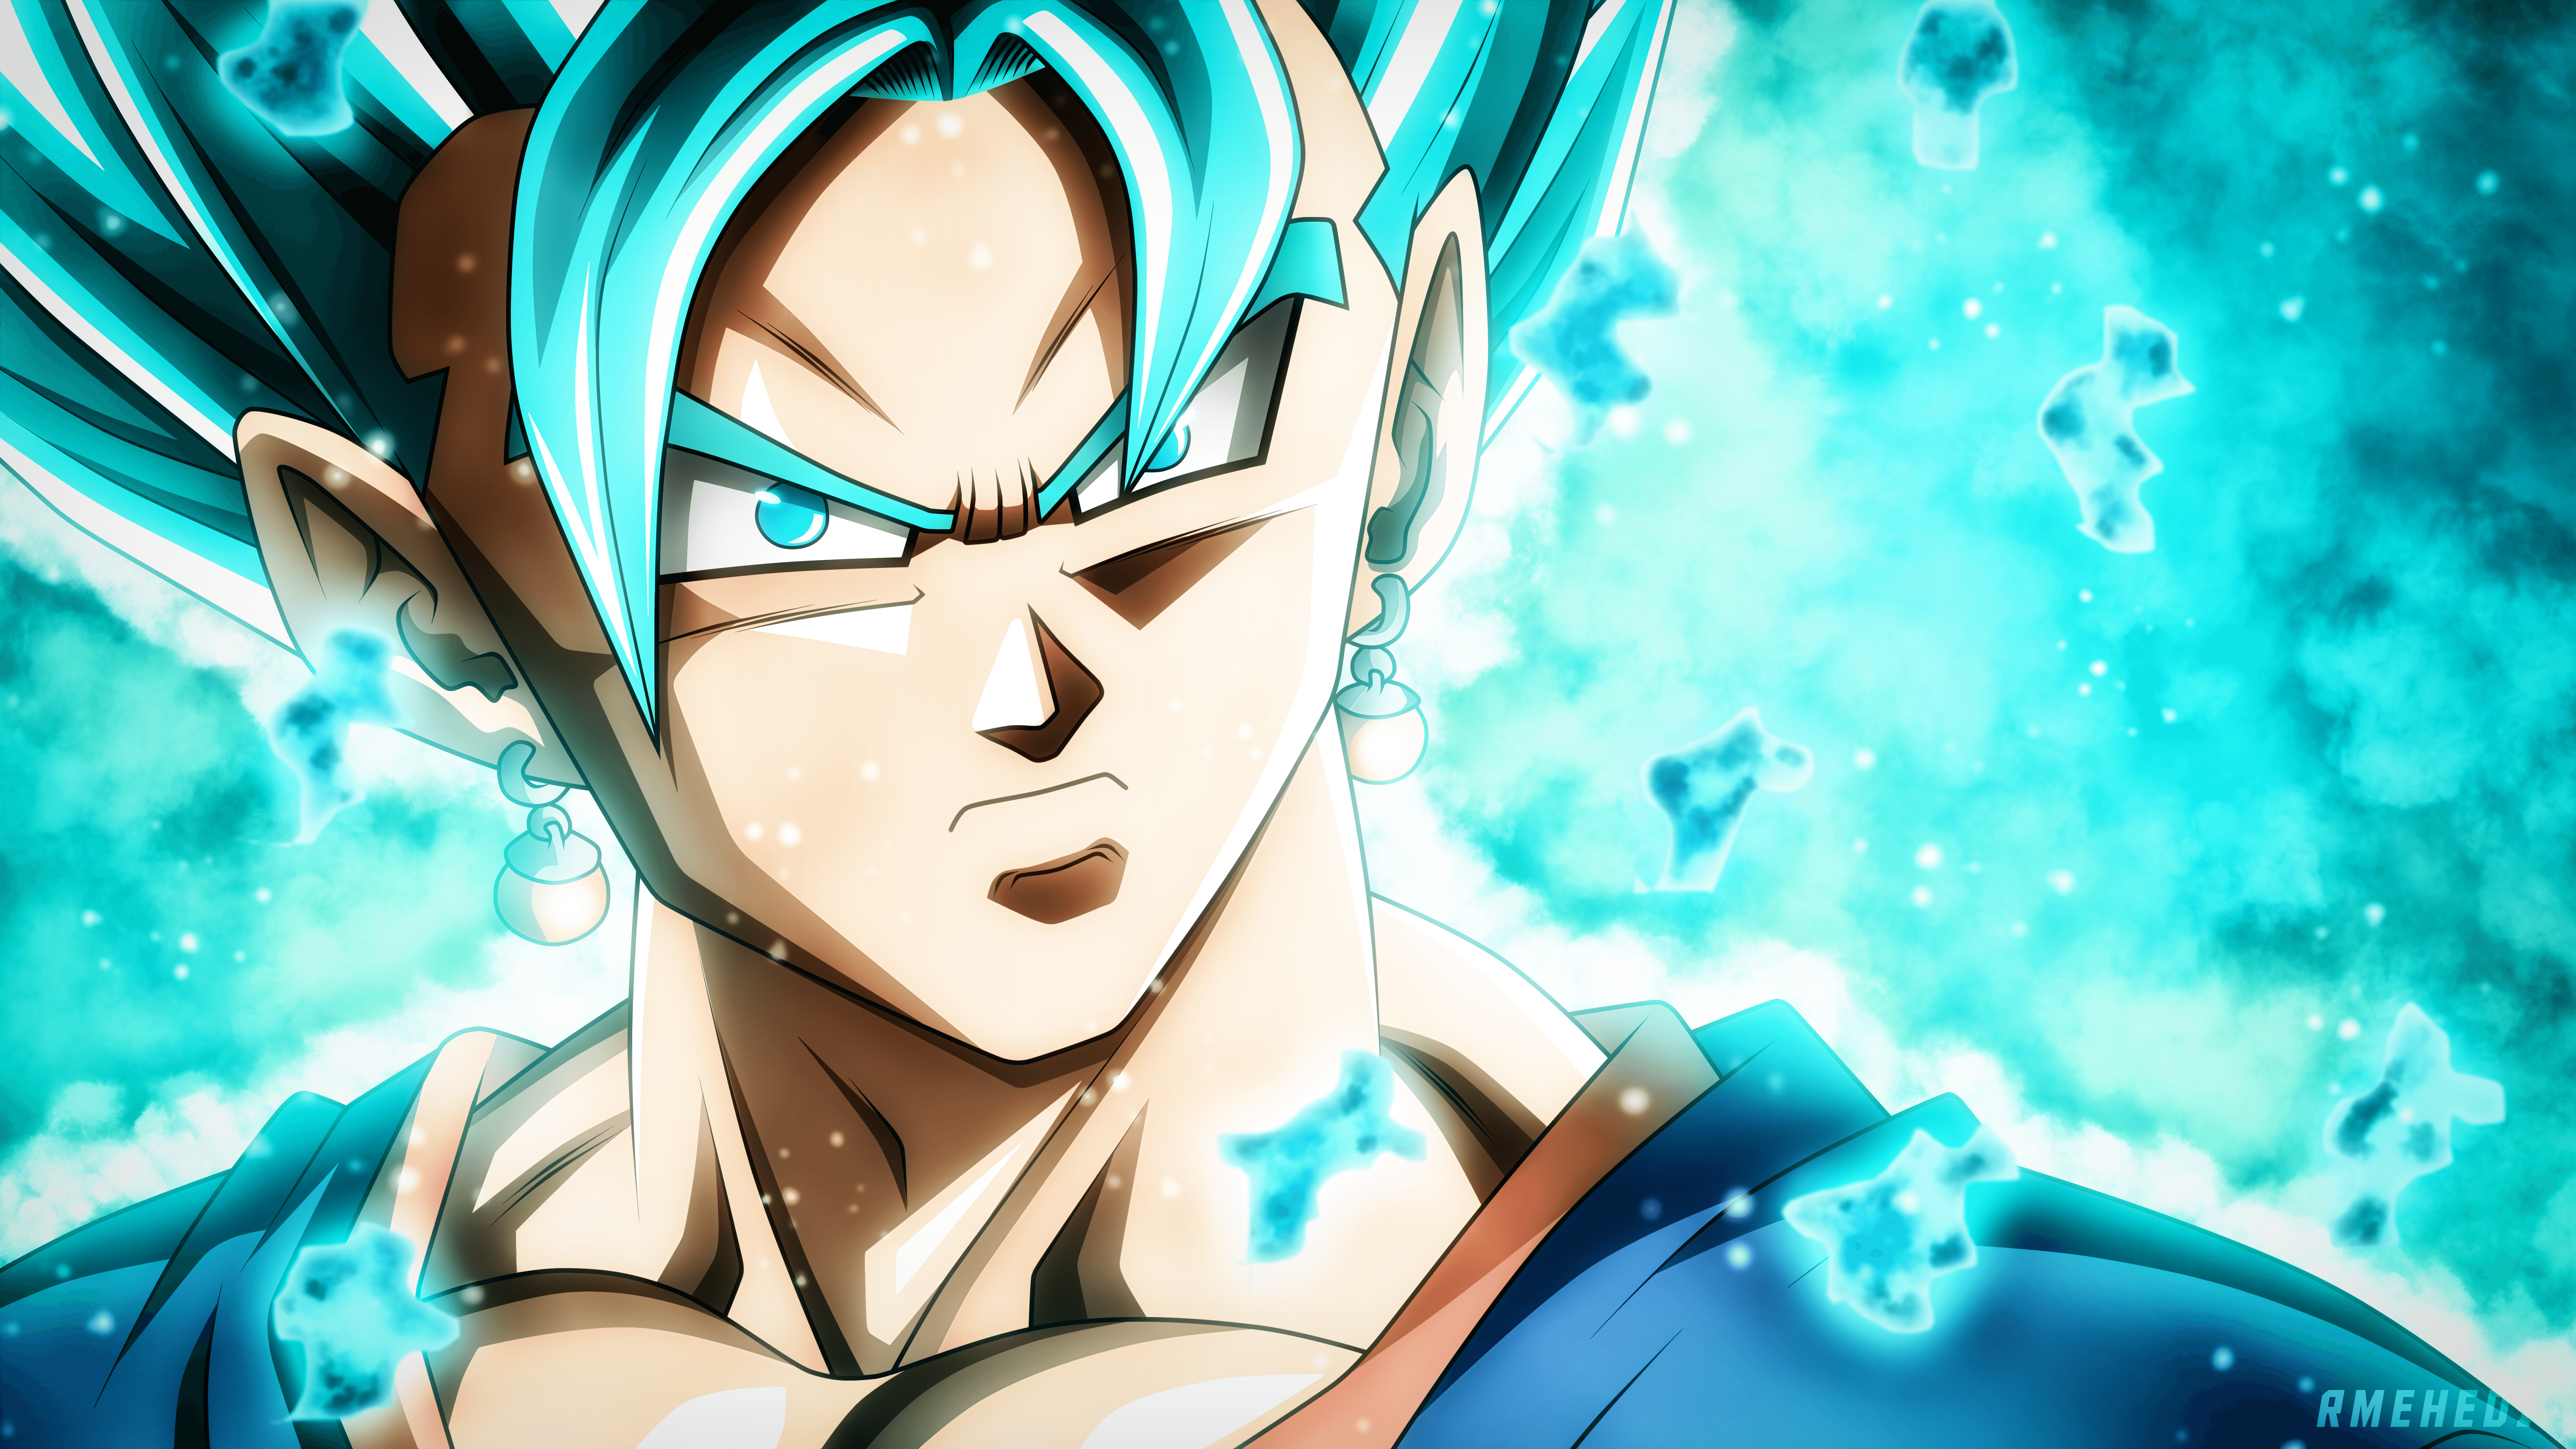 Dragon Ball Super 8k Uhd Wallpapers Top Free Dragon Ball Super 8k Uhd Backgrounds Wallpaperaccess